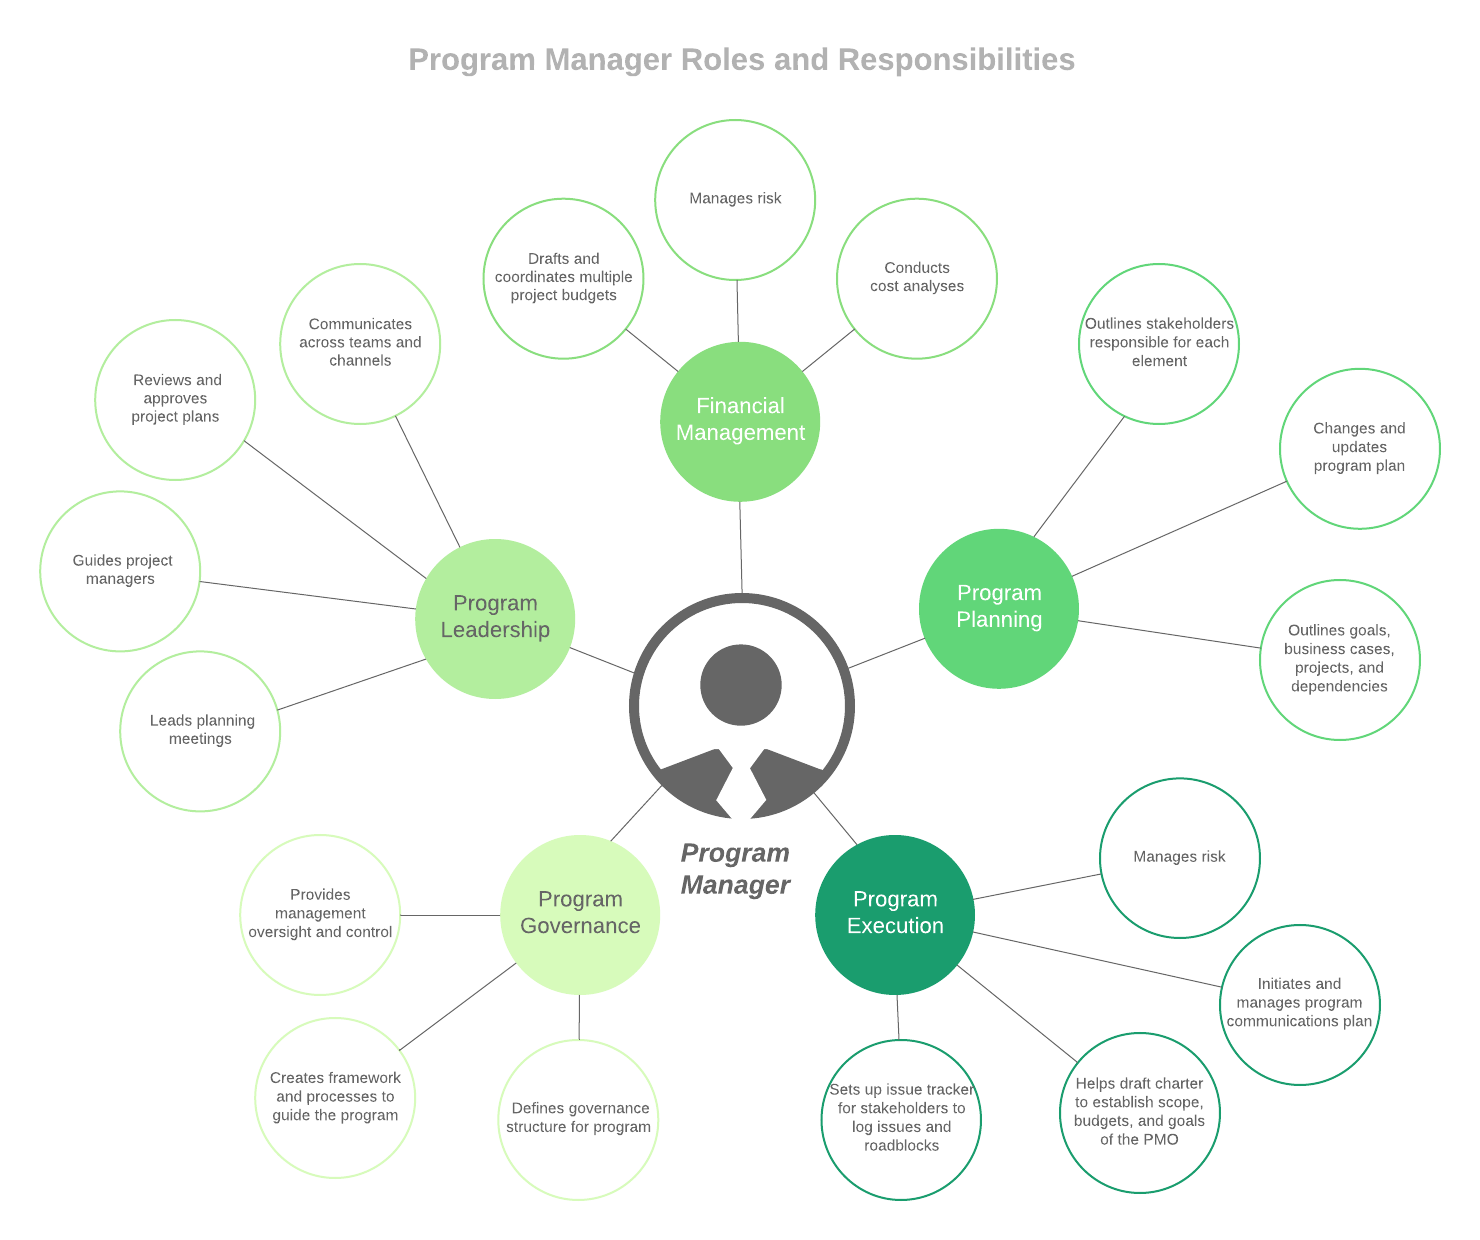 roles and responsibilities of a program manager